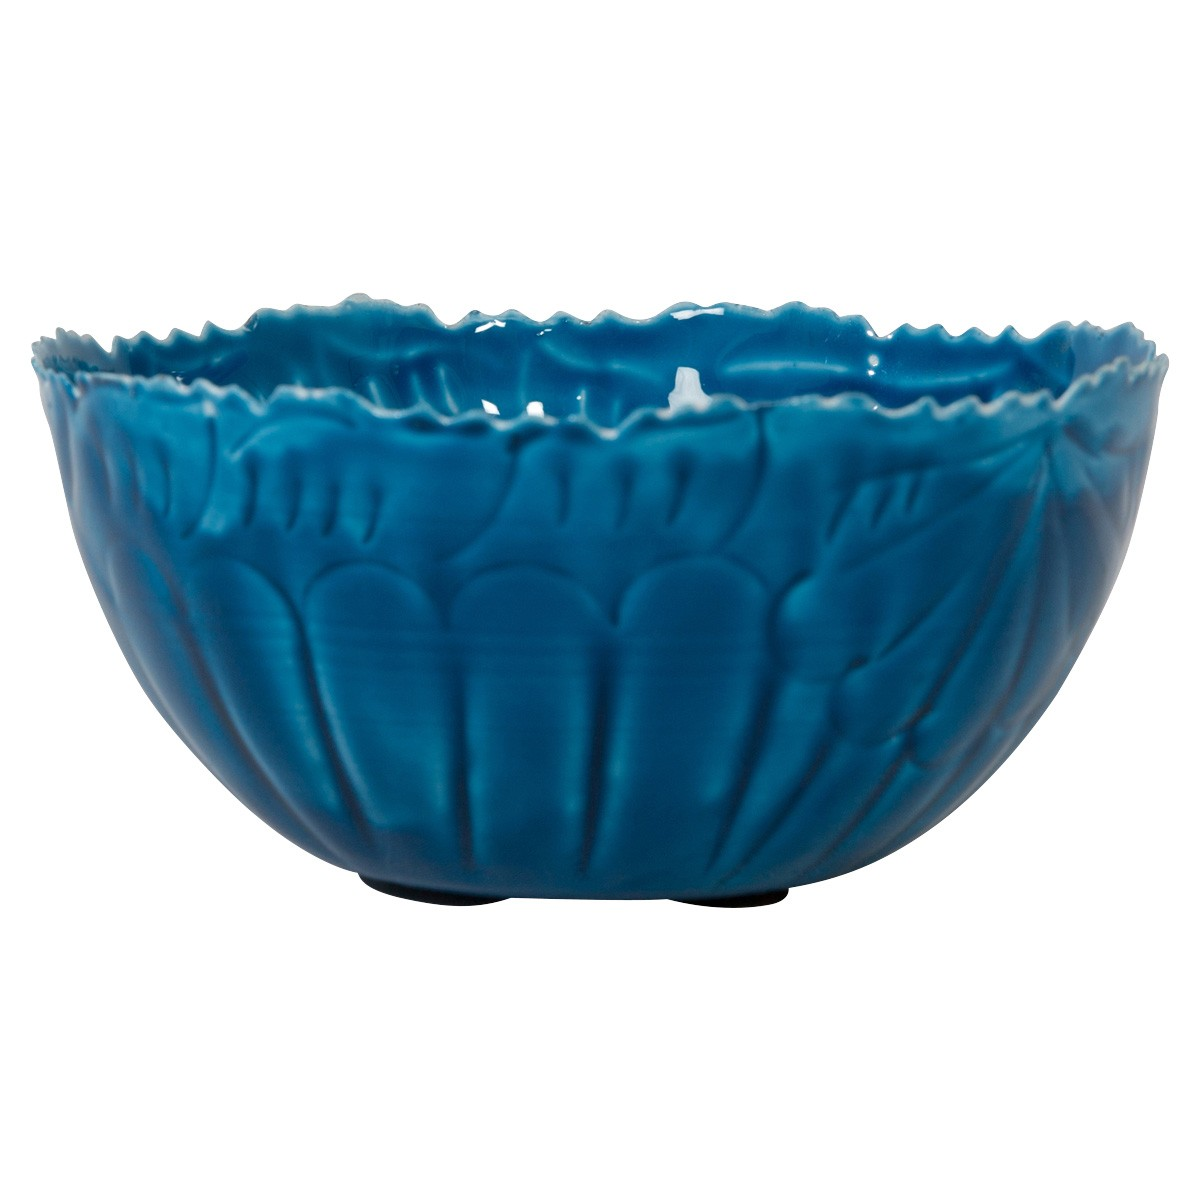 Ameson Enamelled Iron Round Bowl, Extra Small, Blue